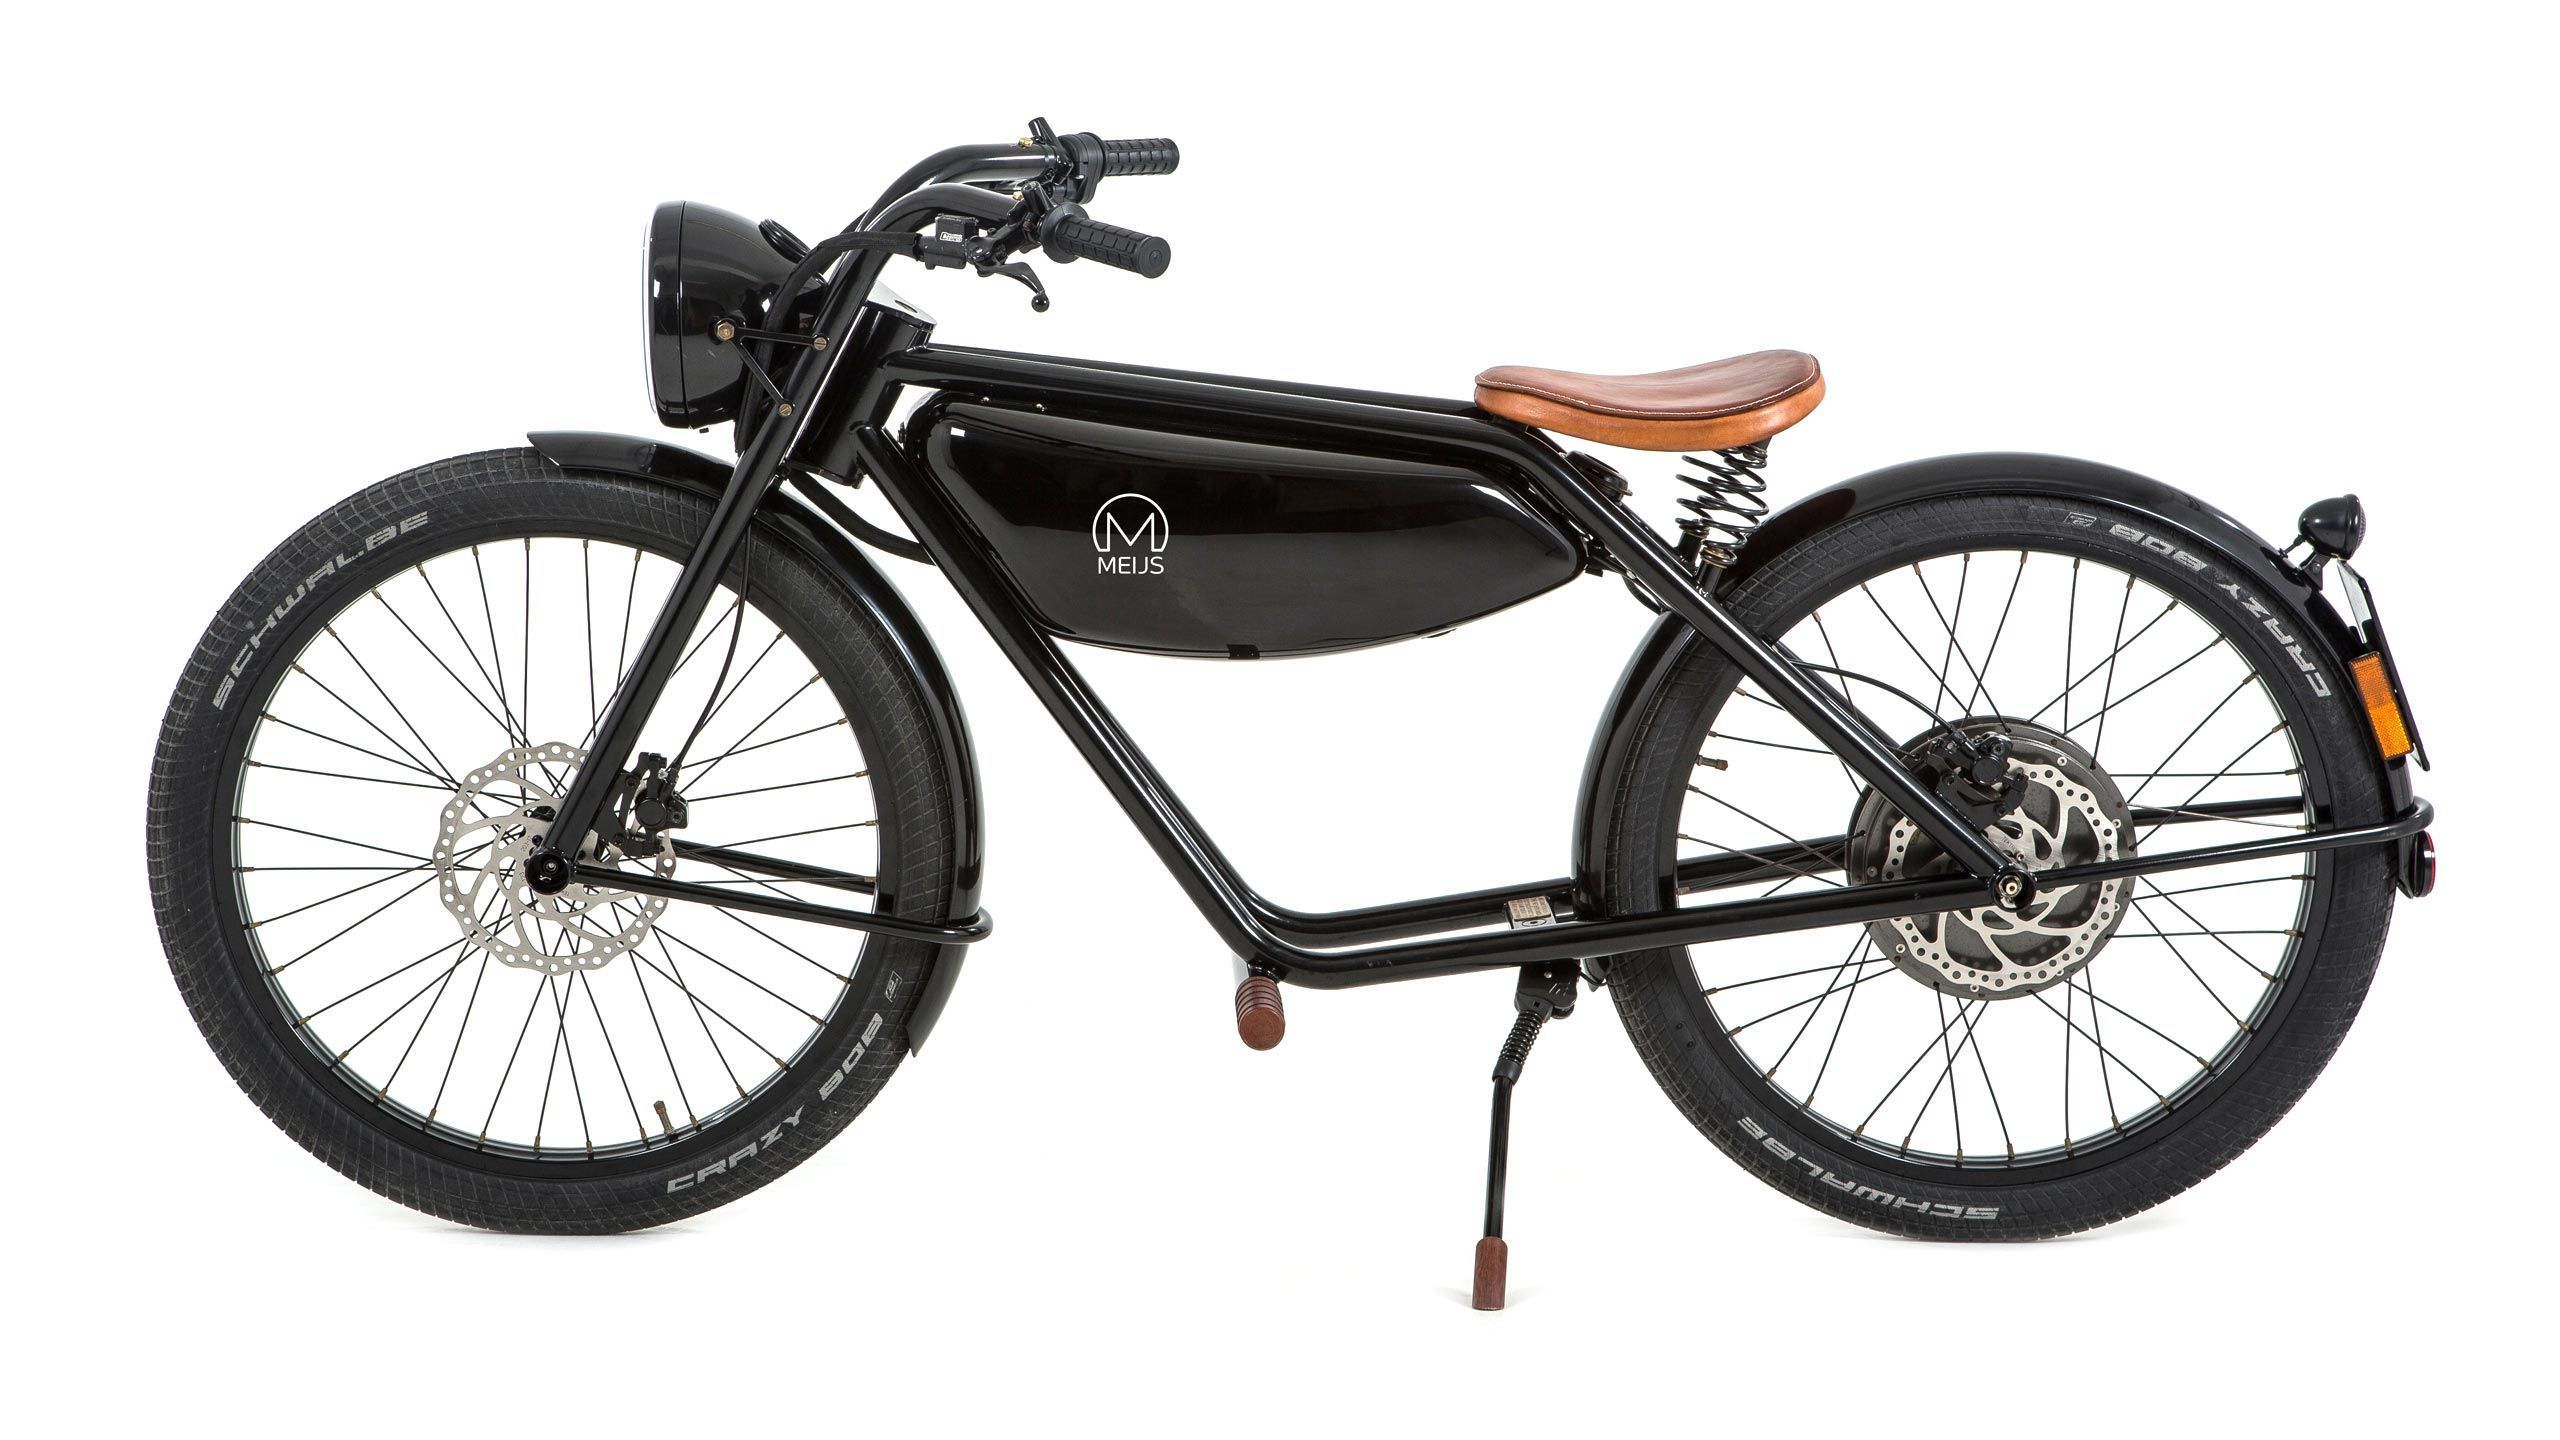 Motorman Cool Retro Style Electric Moped Designed And Build In